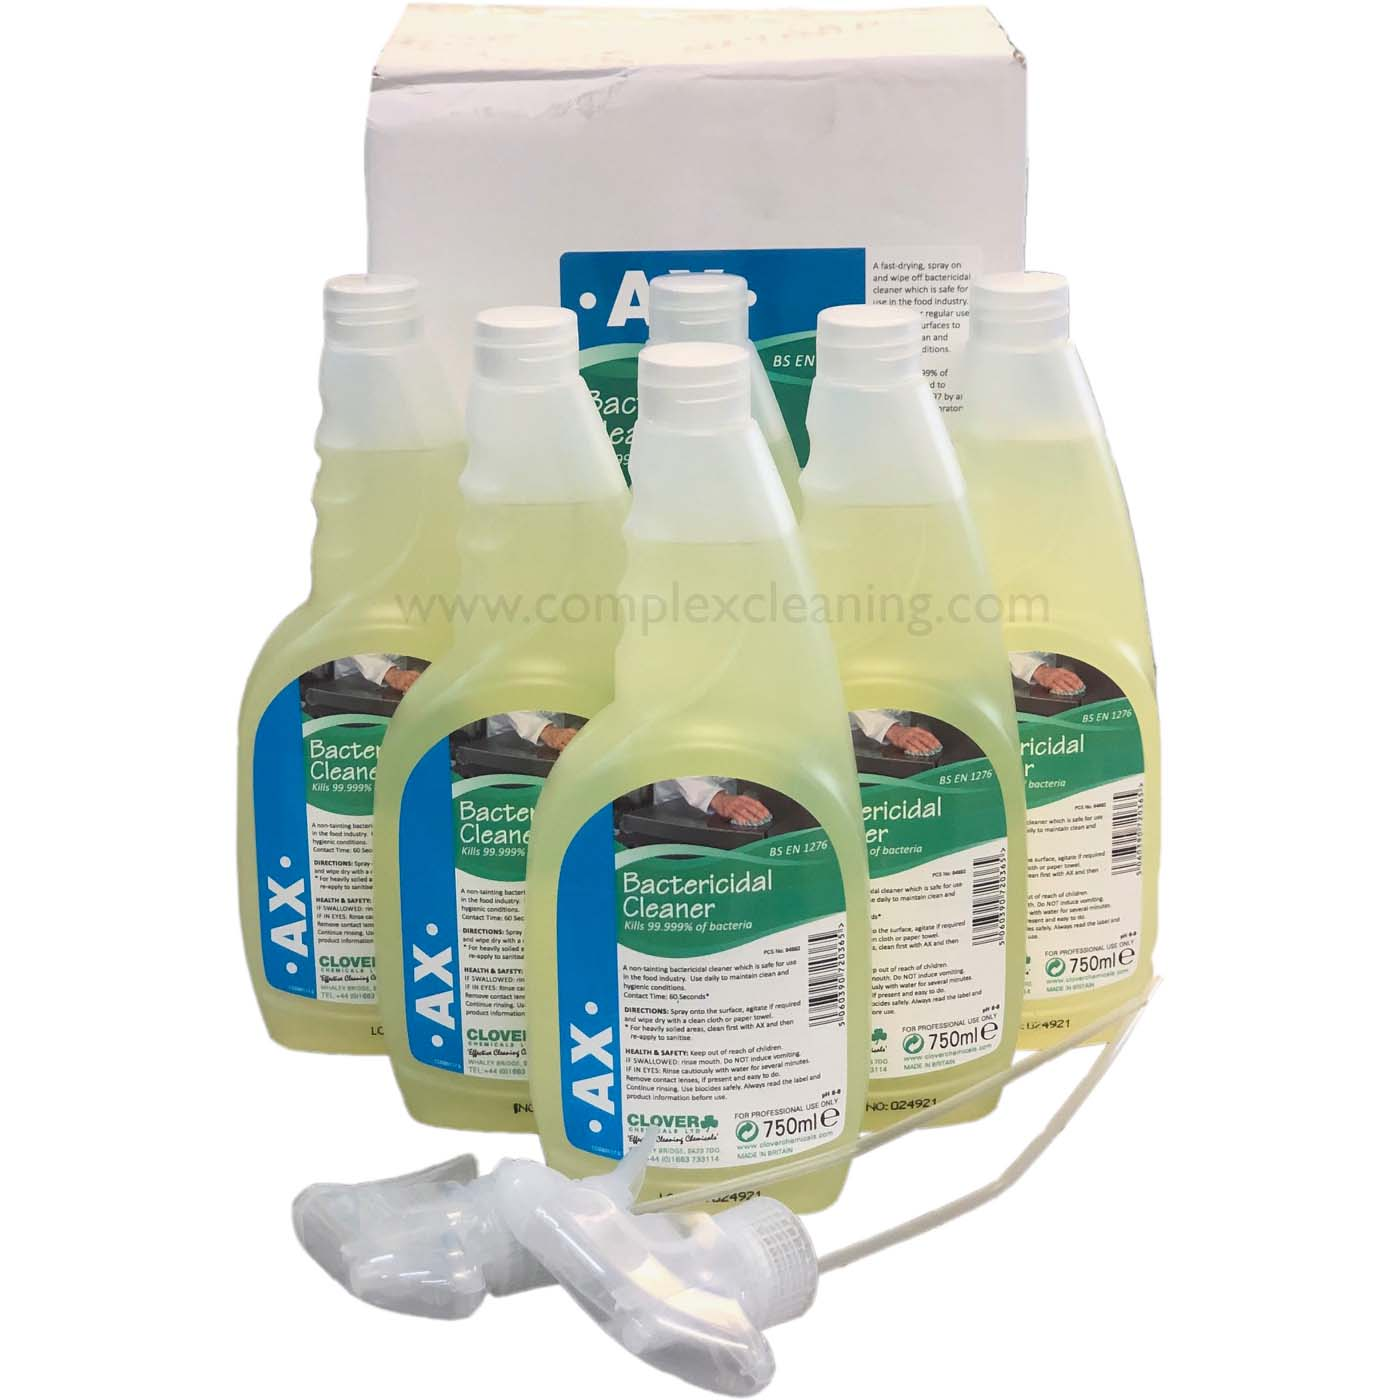 AX---Bactericidal-Cleaner-6x750ml--case-